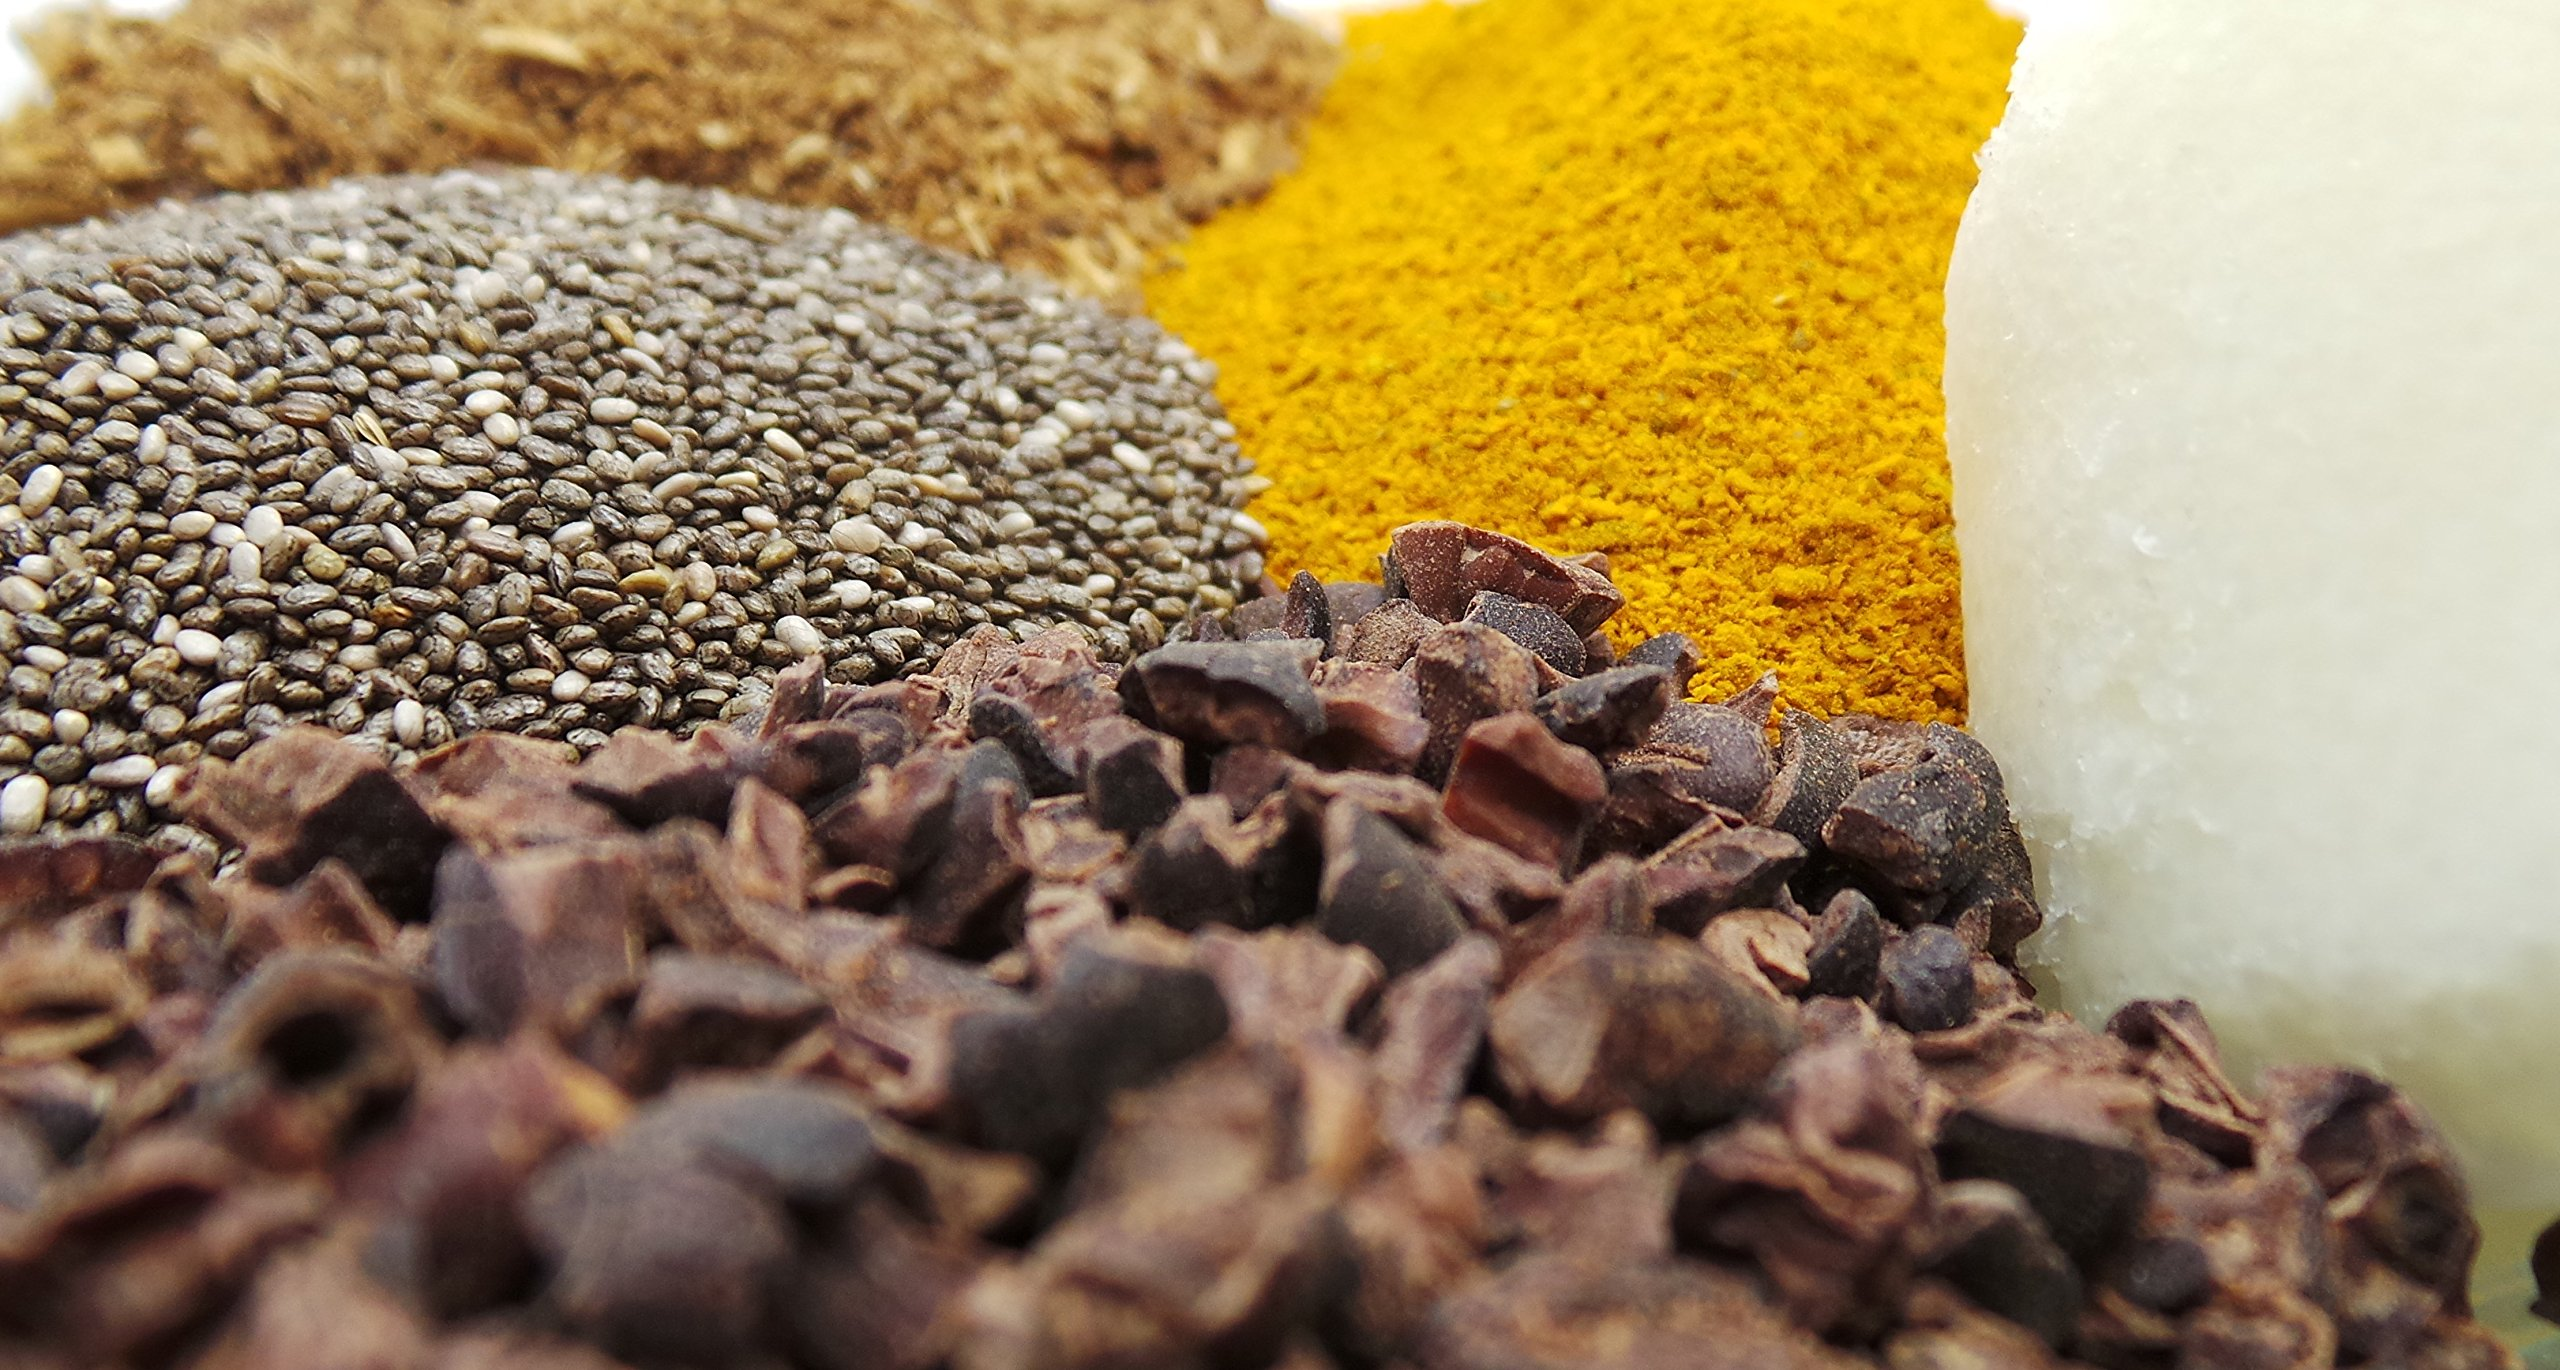 Belizean Superfoods Smoothie Additives Pack to Supercharge Your Day - Includes Turmeric, Chia Seeds, Chai Blend, Cacao Powder and Coconut Oil